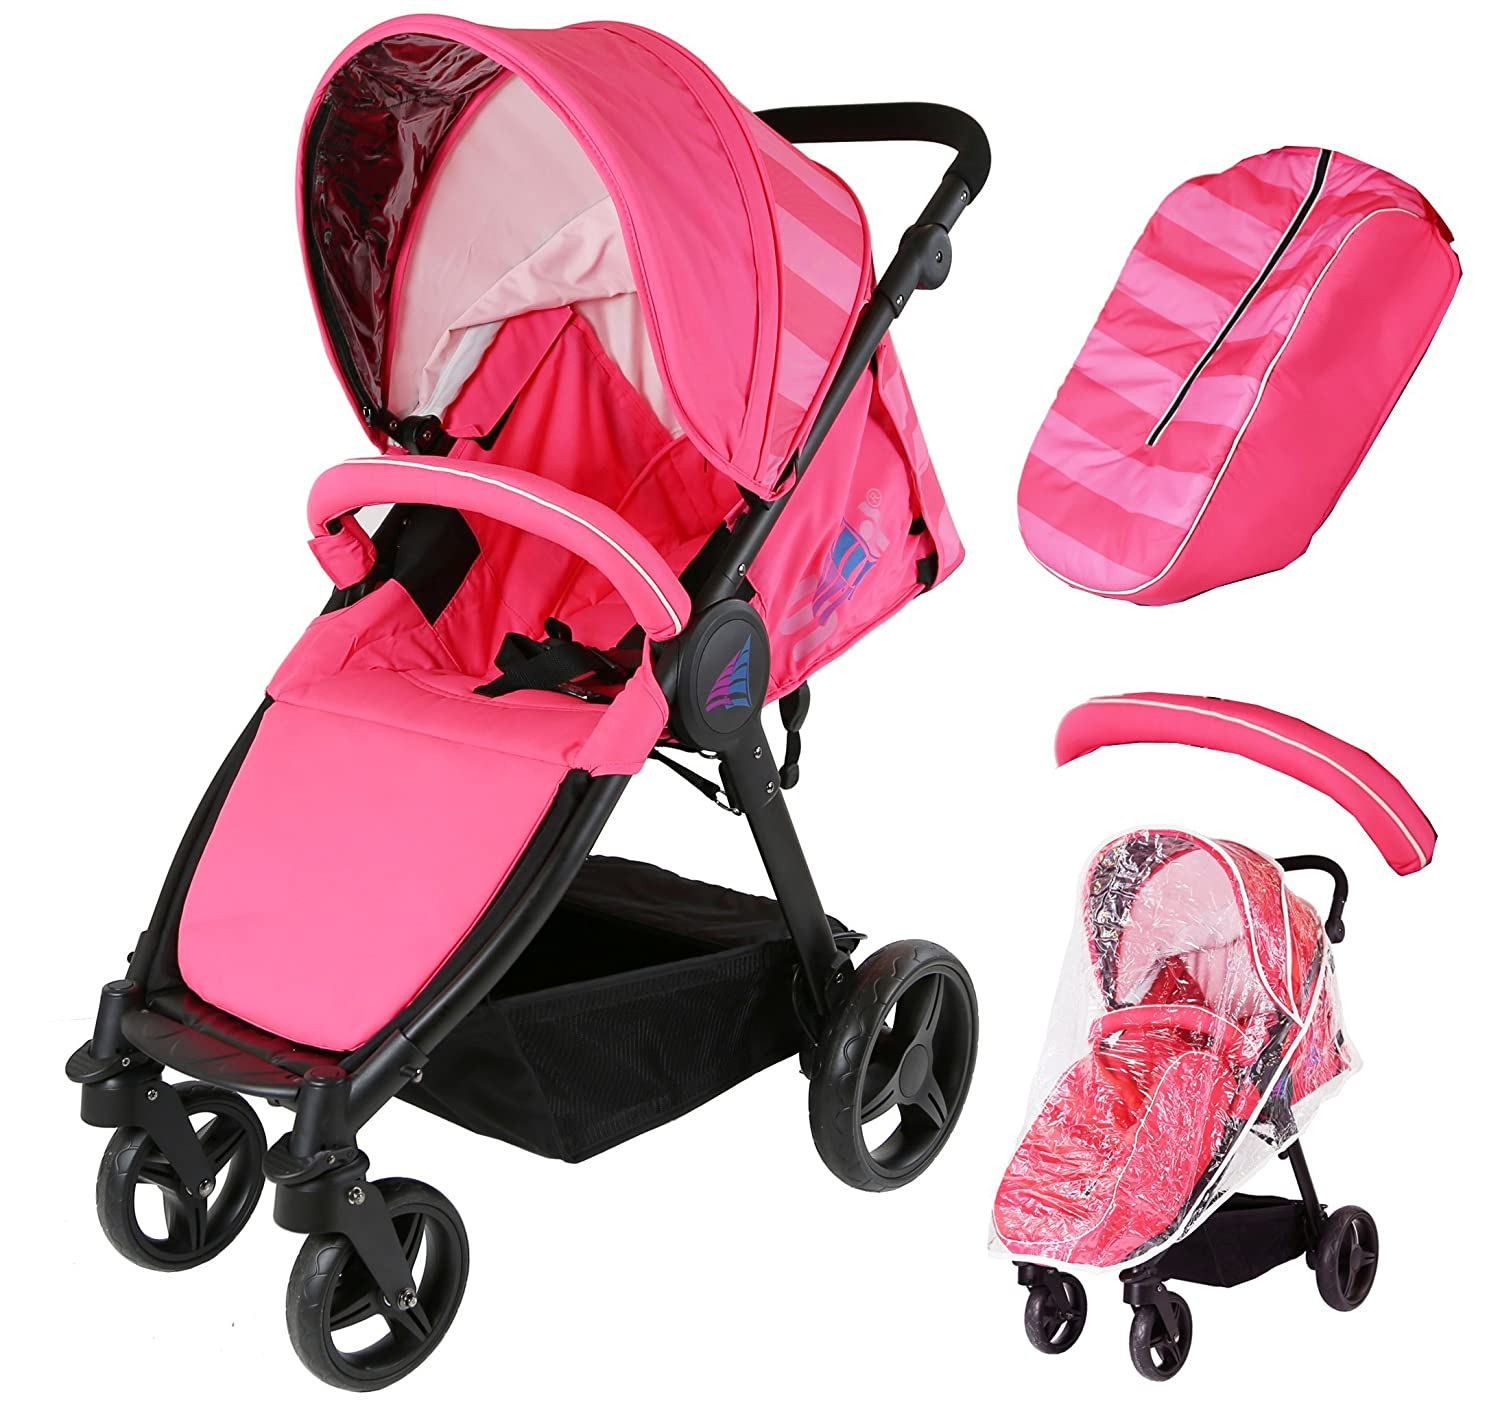 Sail Stroller - Pink Raspberry Includes Bumper Bar Rain cover Bootcover